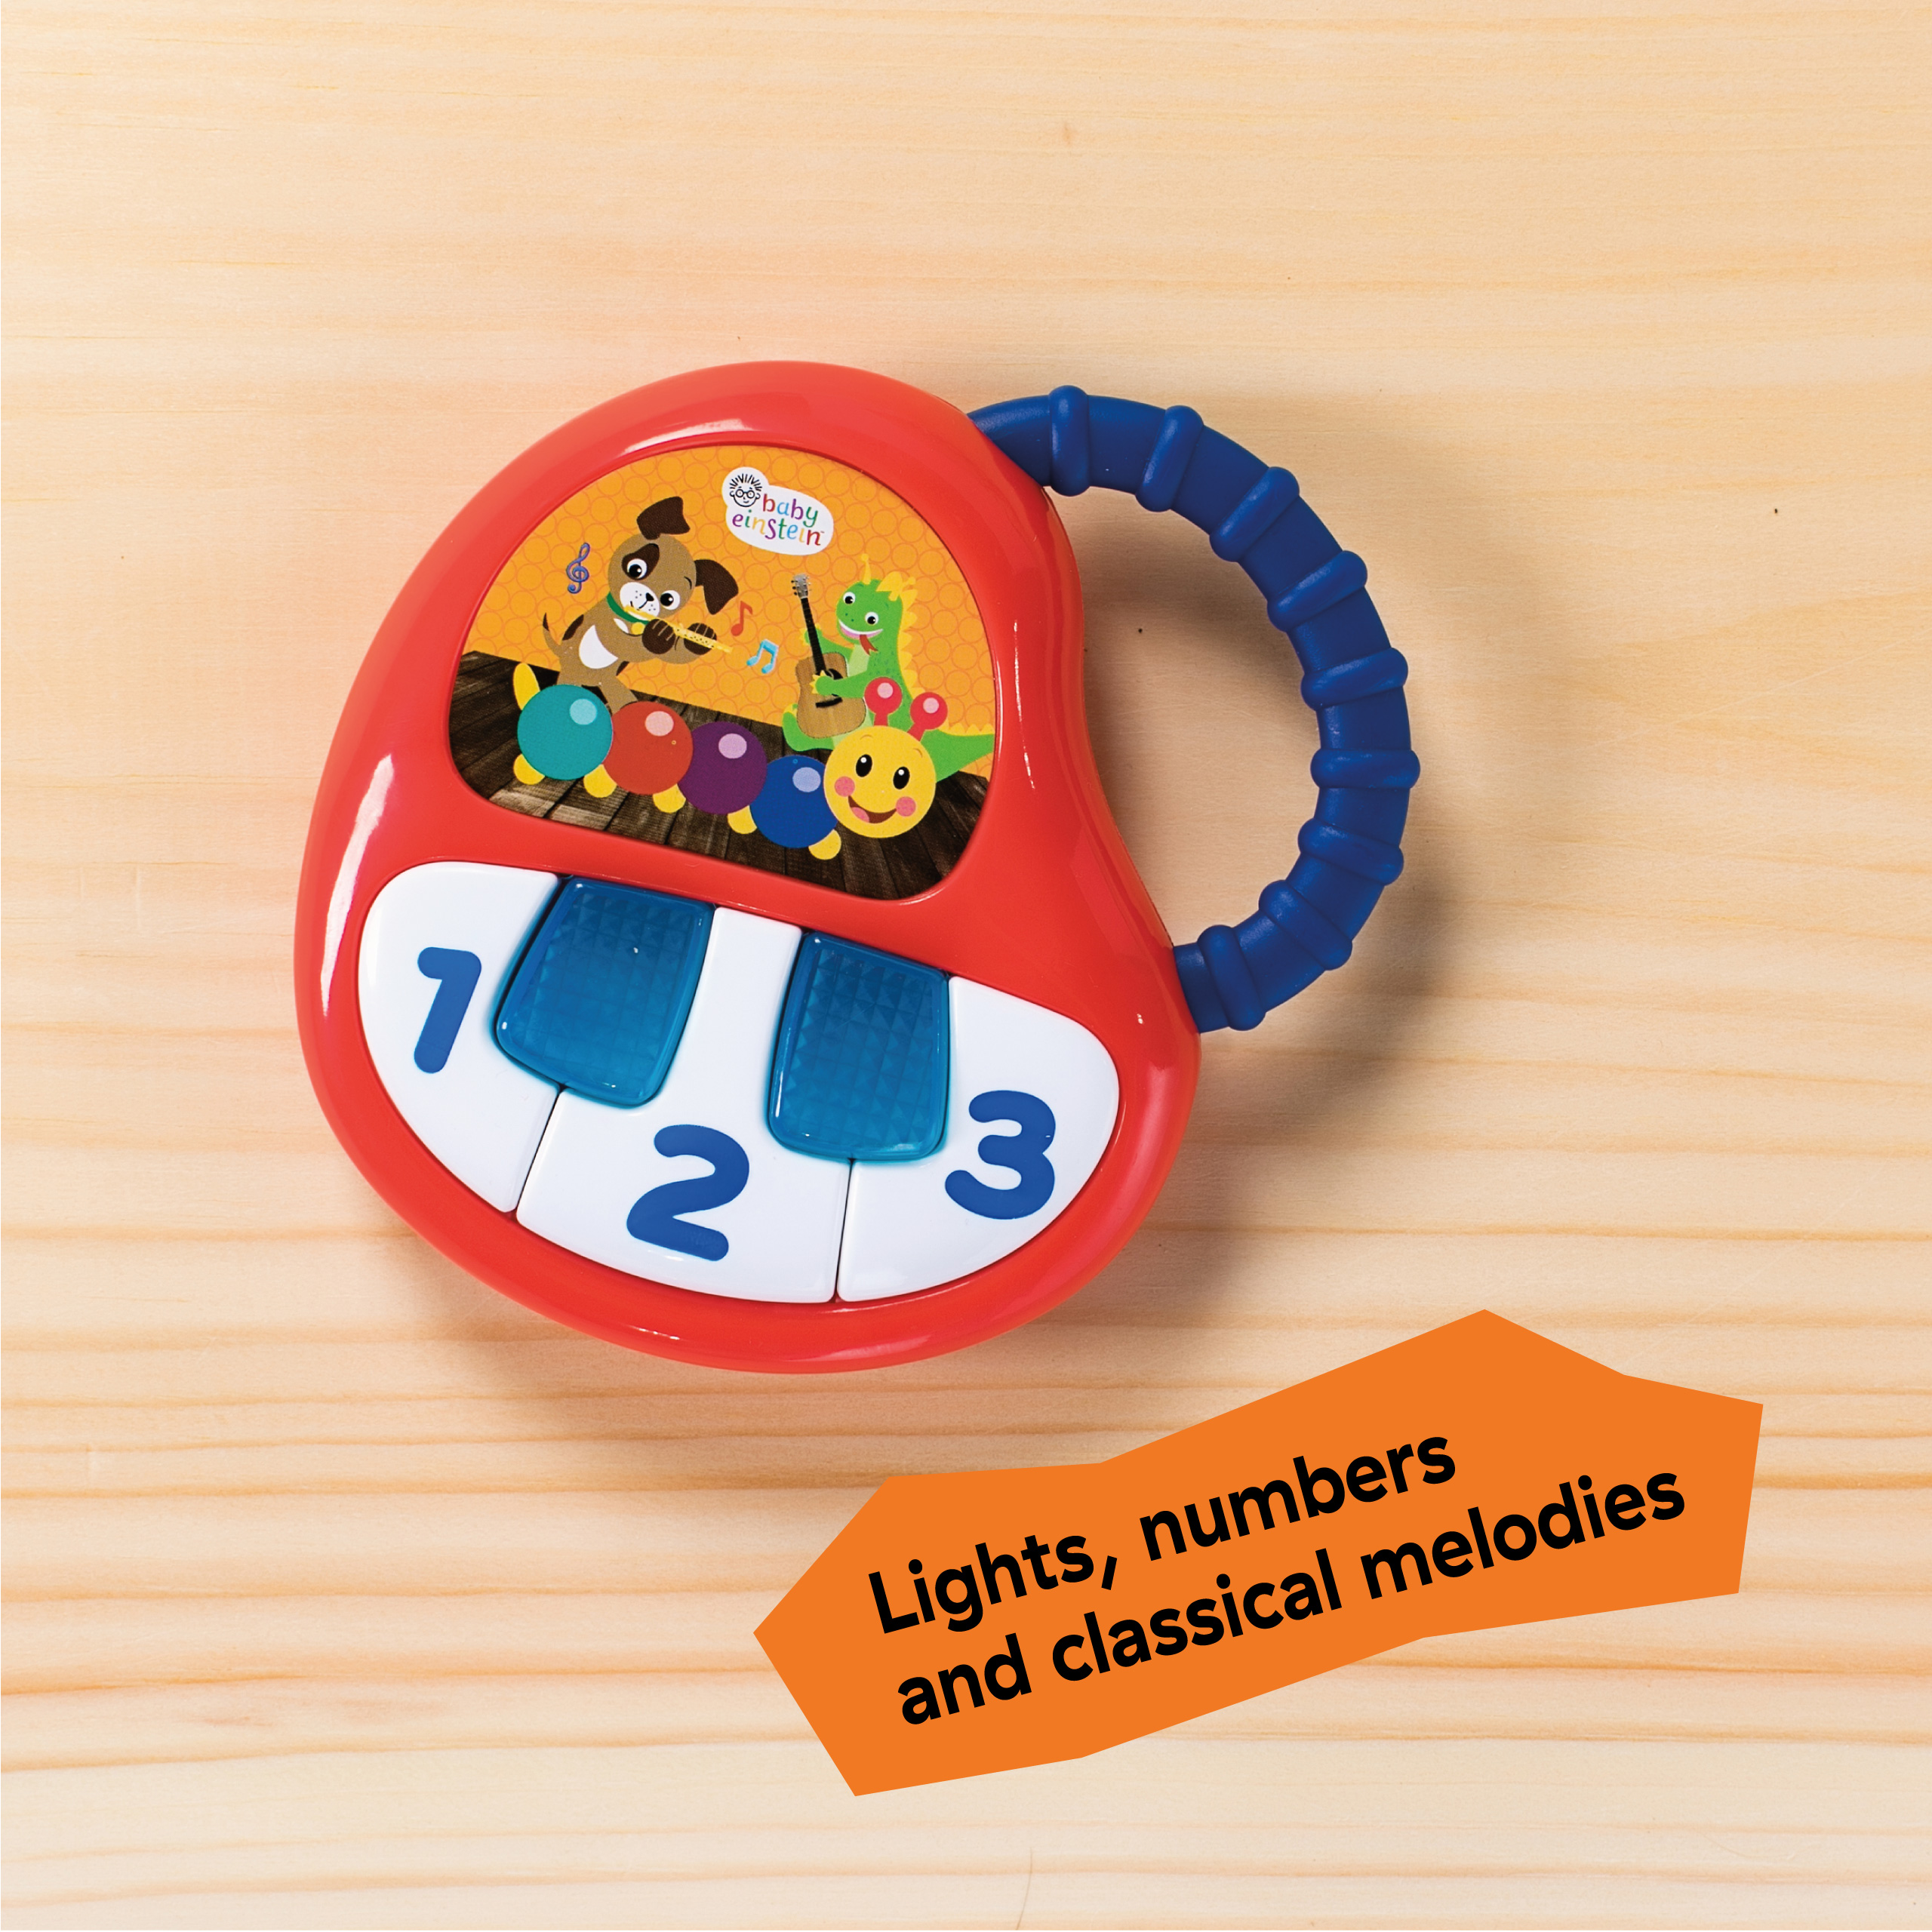 Keys to Discover Piano™ Toy